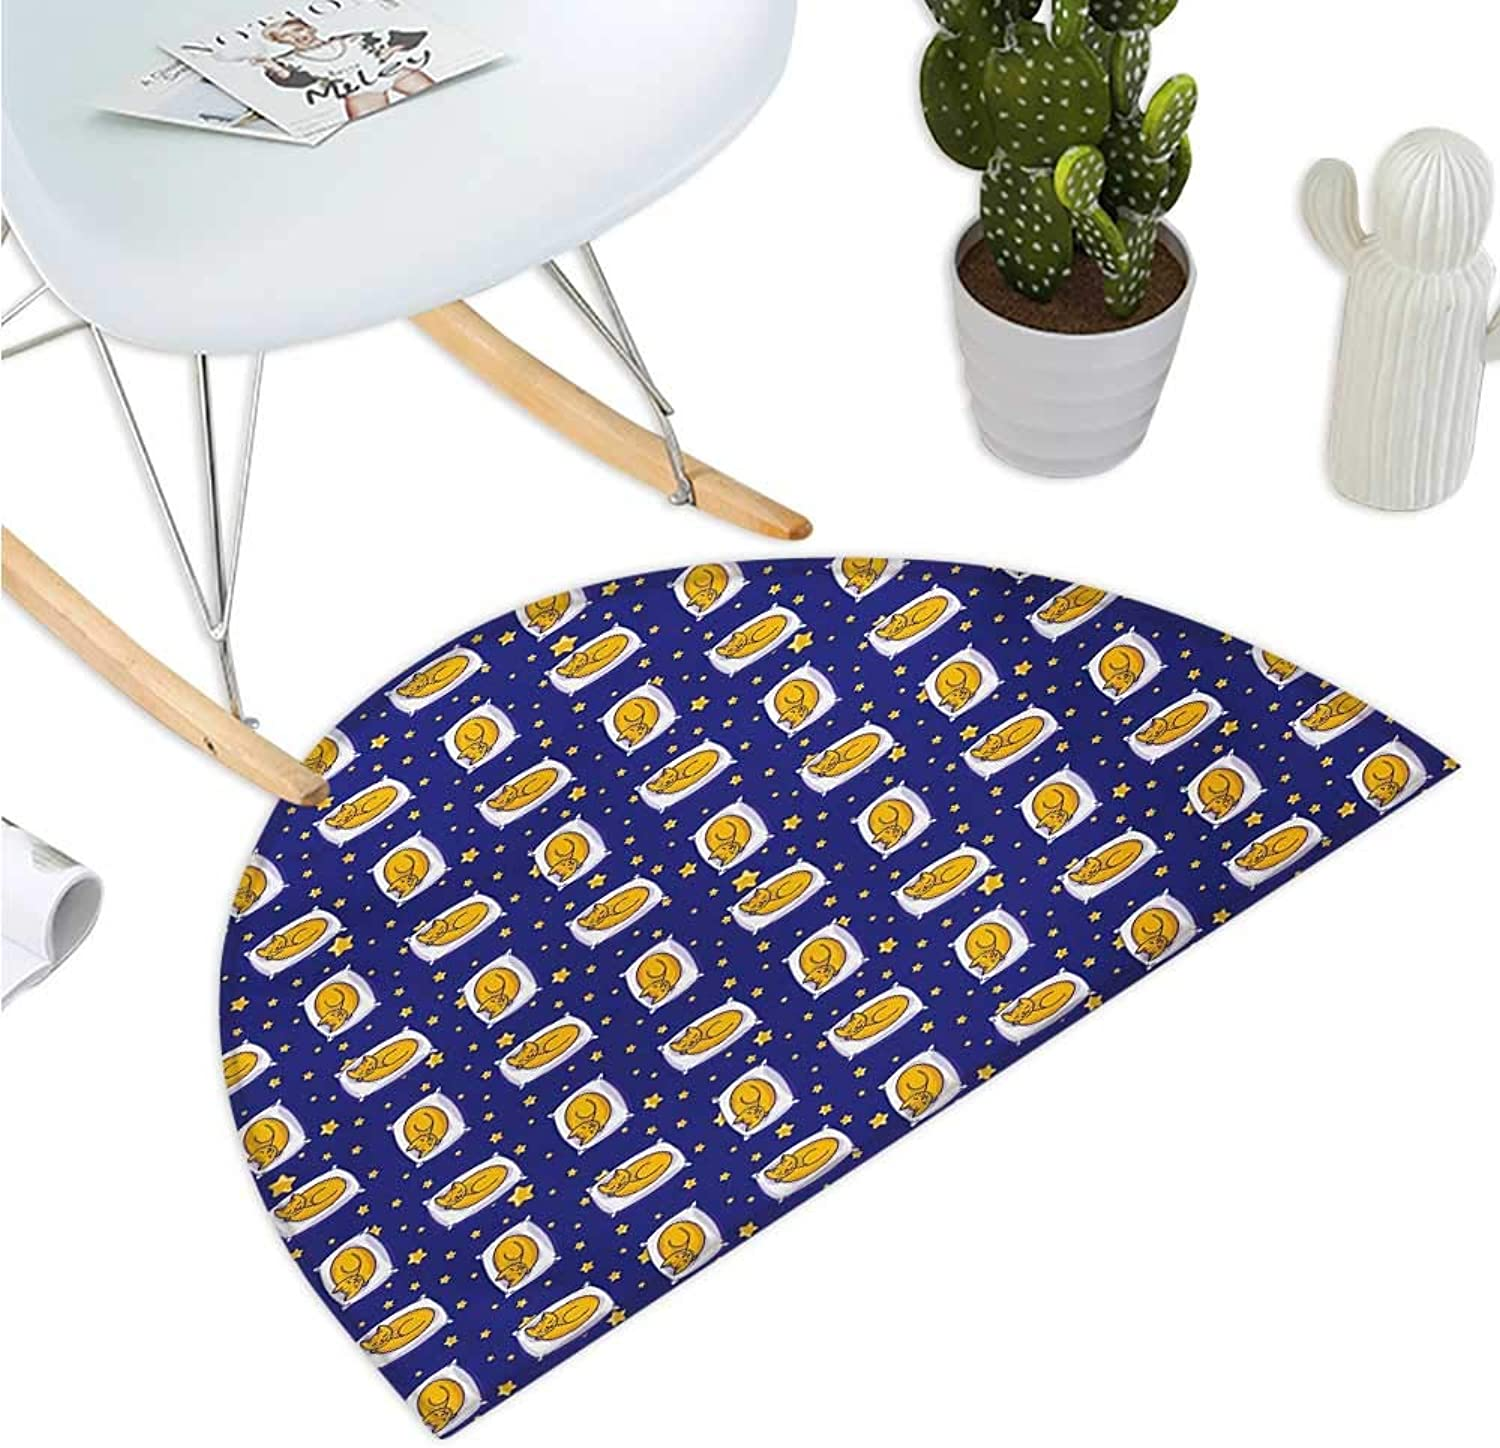 Cats Semicircle Doormat Sleeping Cats on Pillows in Starry Night Sky Sweet Dreams for Kids Halfmoon doormats H 35.4  xD 53.1  Royal bluee Earth Yellow White